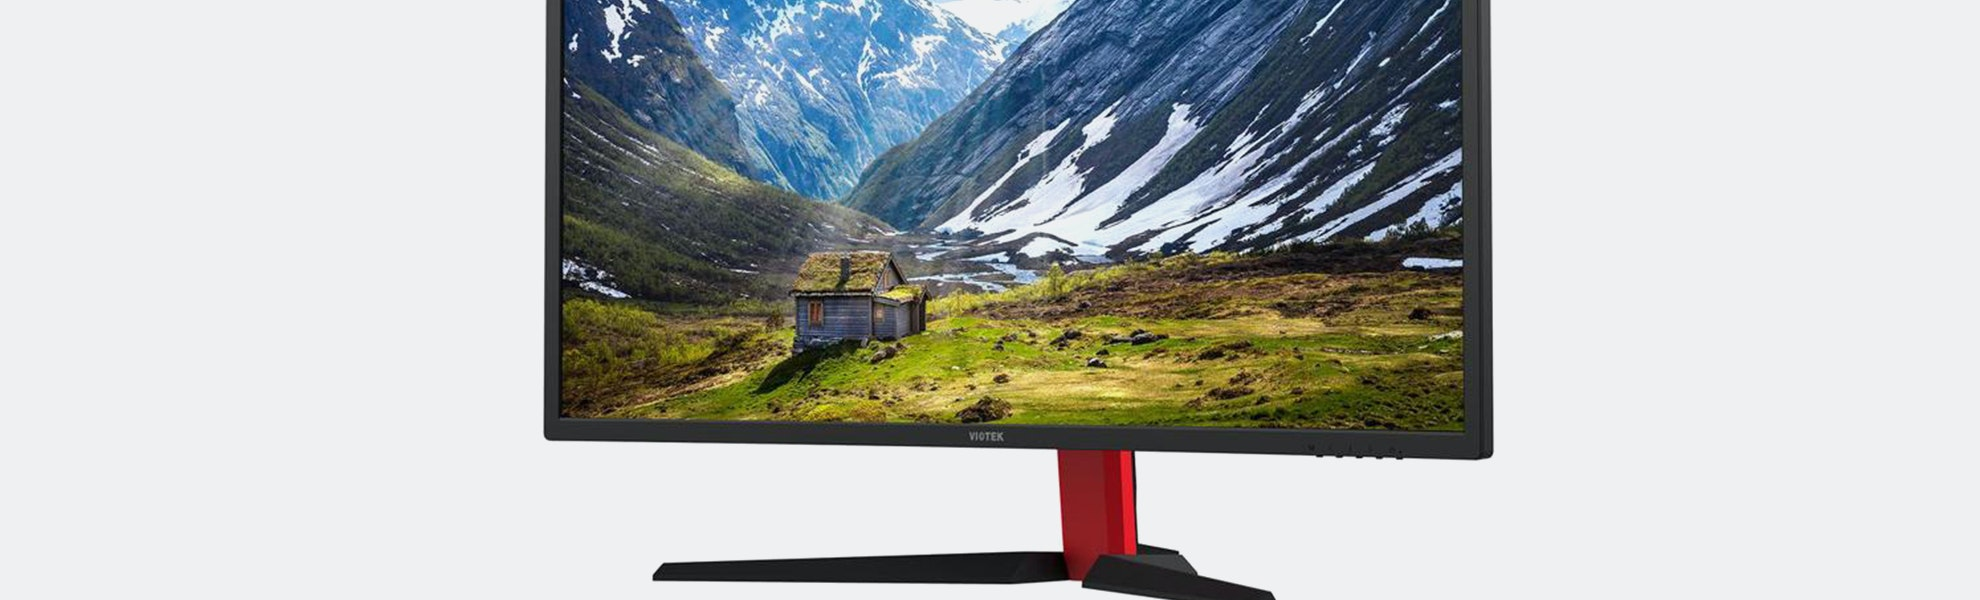 Viotek 32-Inch Curved 144Hz Gaming Monitor